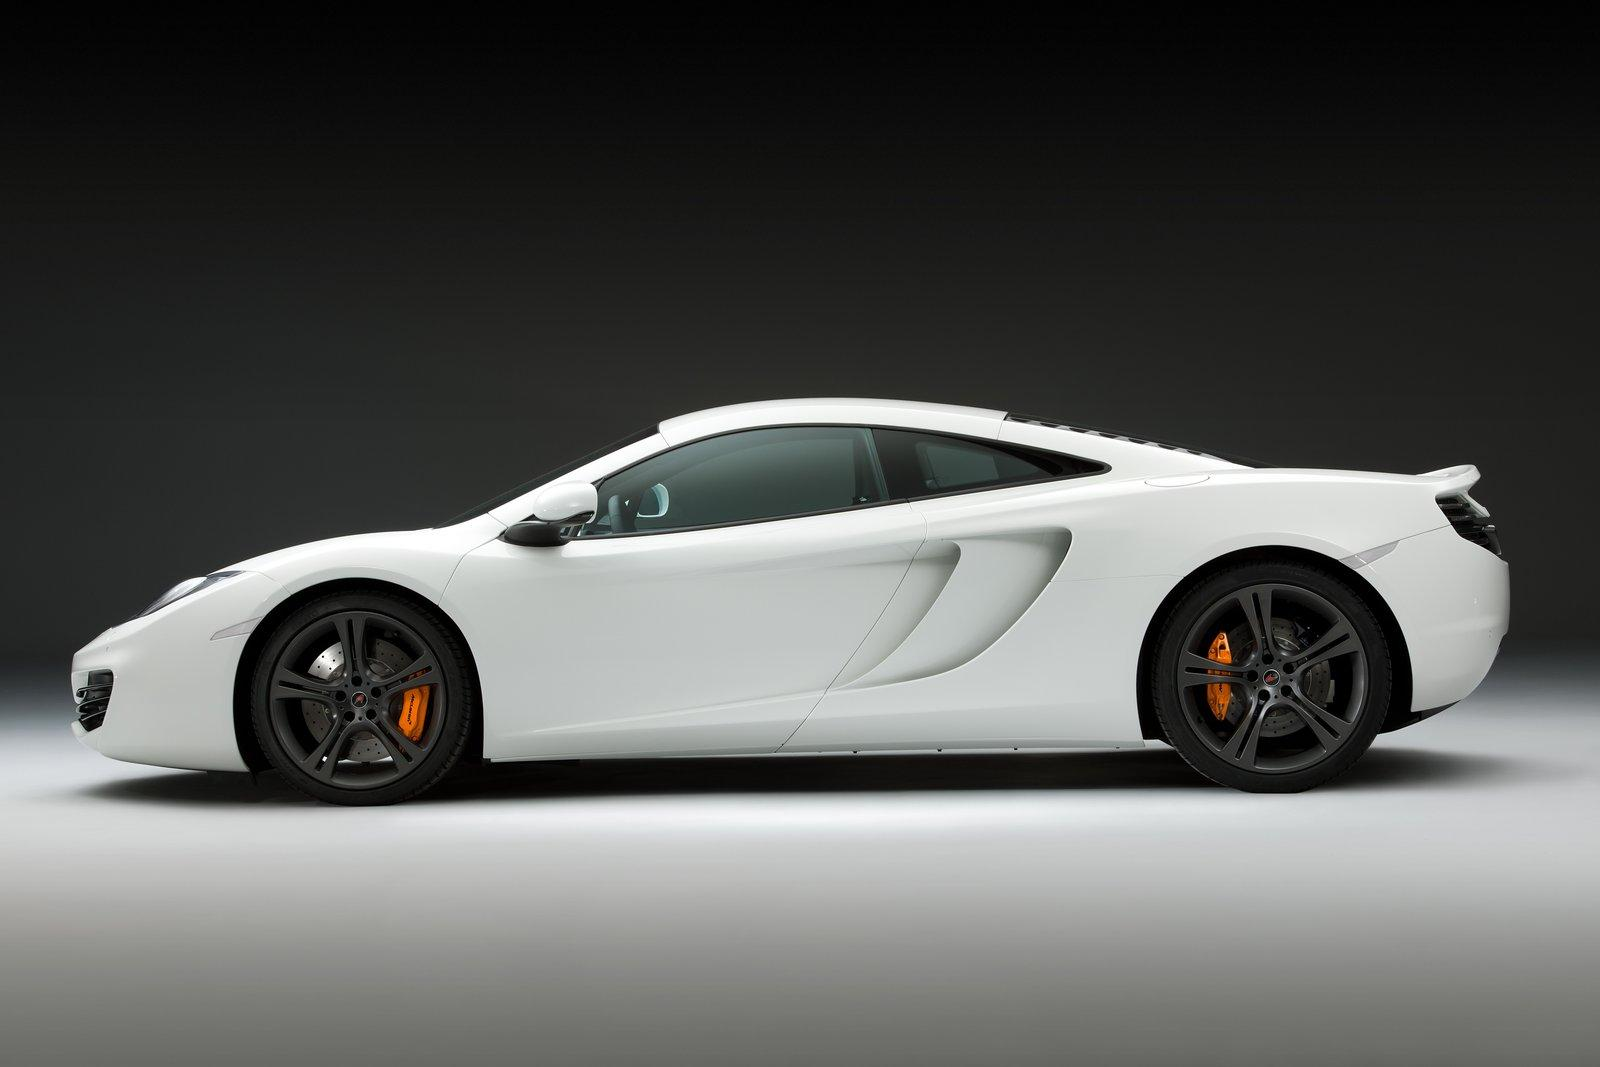 McLaren MP4 12C Critiques opinion provoked MP4 12C modification for better performance